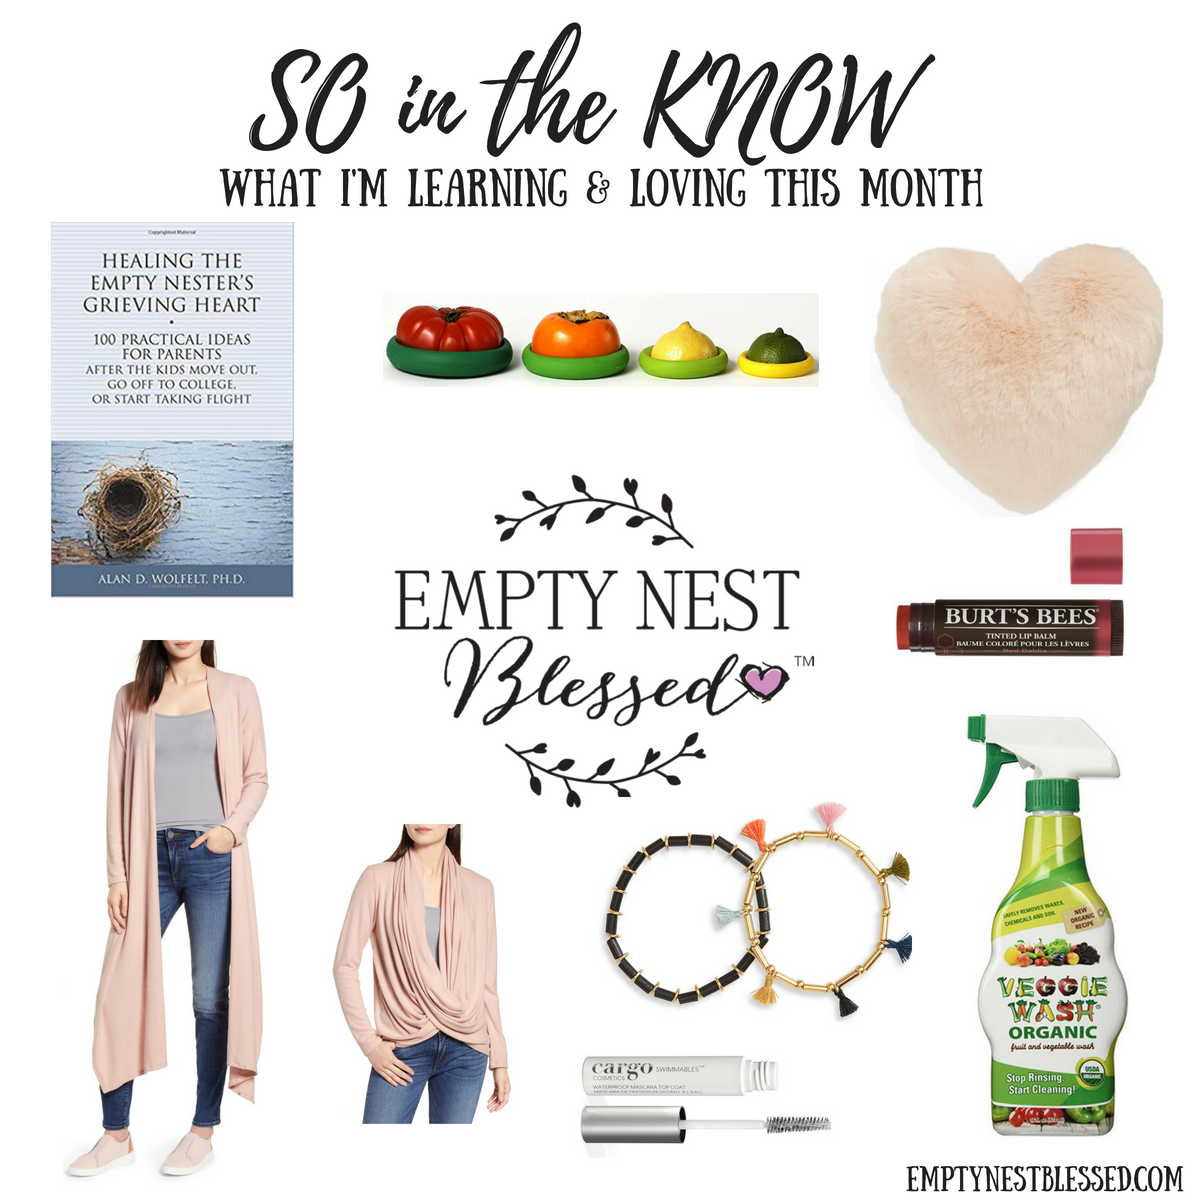 SO in the KNOW | What I'm Learning & Loving in the Empty Nest in August